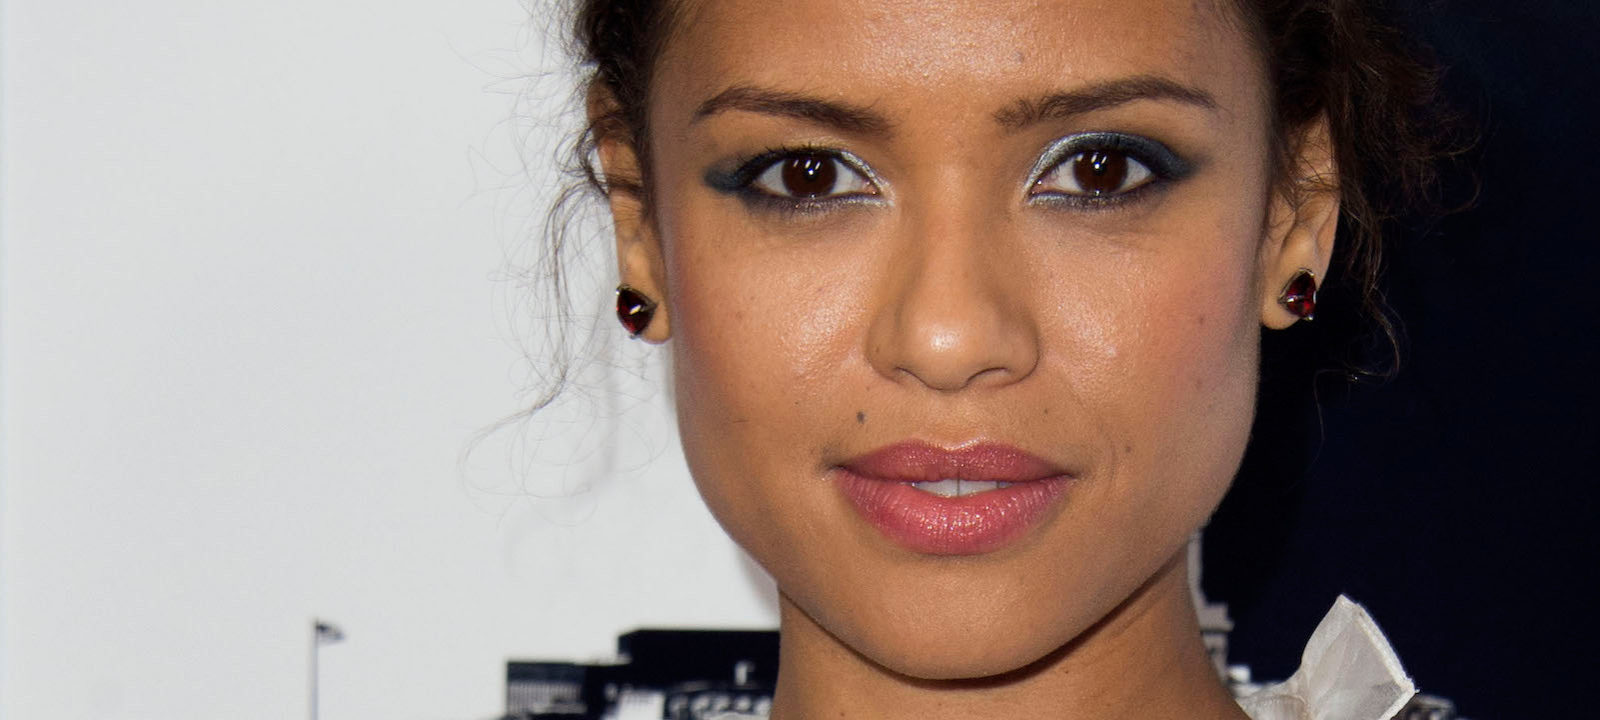 """Actress Gugu Mbatha-Raw attends the Premiere of """"Miss Sloane"""" during the AFI Fest, in Hollywood, California, on November 11, 2016."""